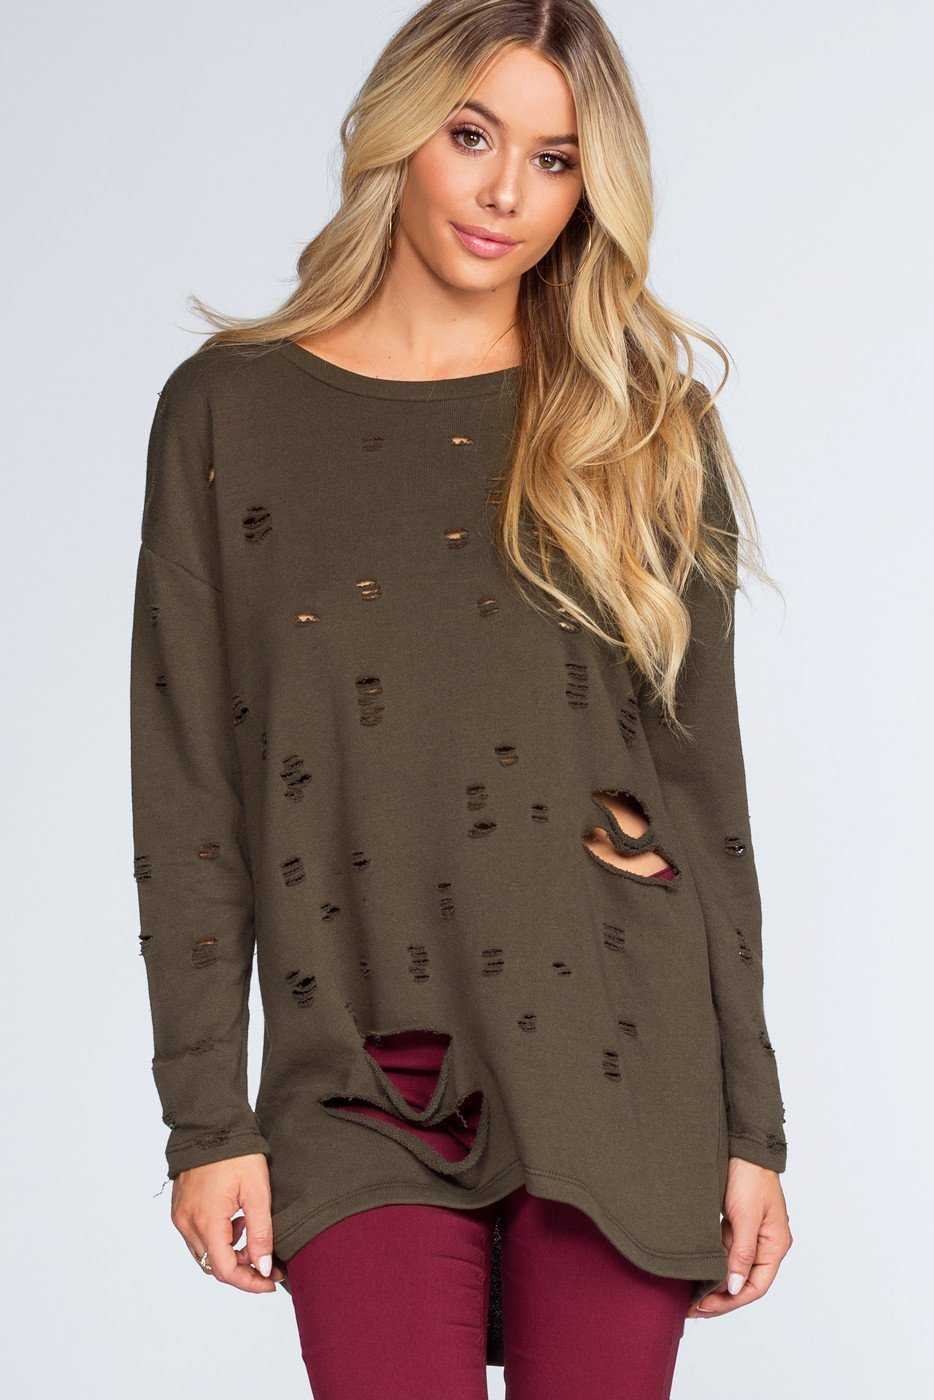 Tops - Caught In The Act Distressed Sweater - Olive